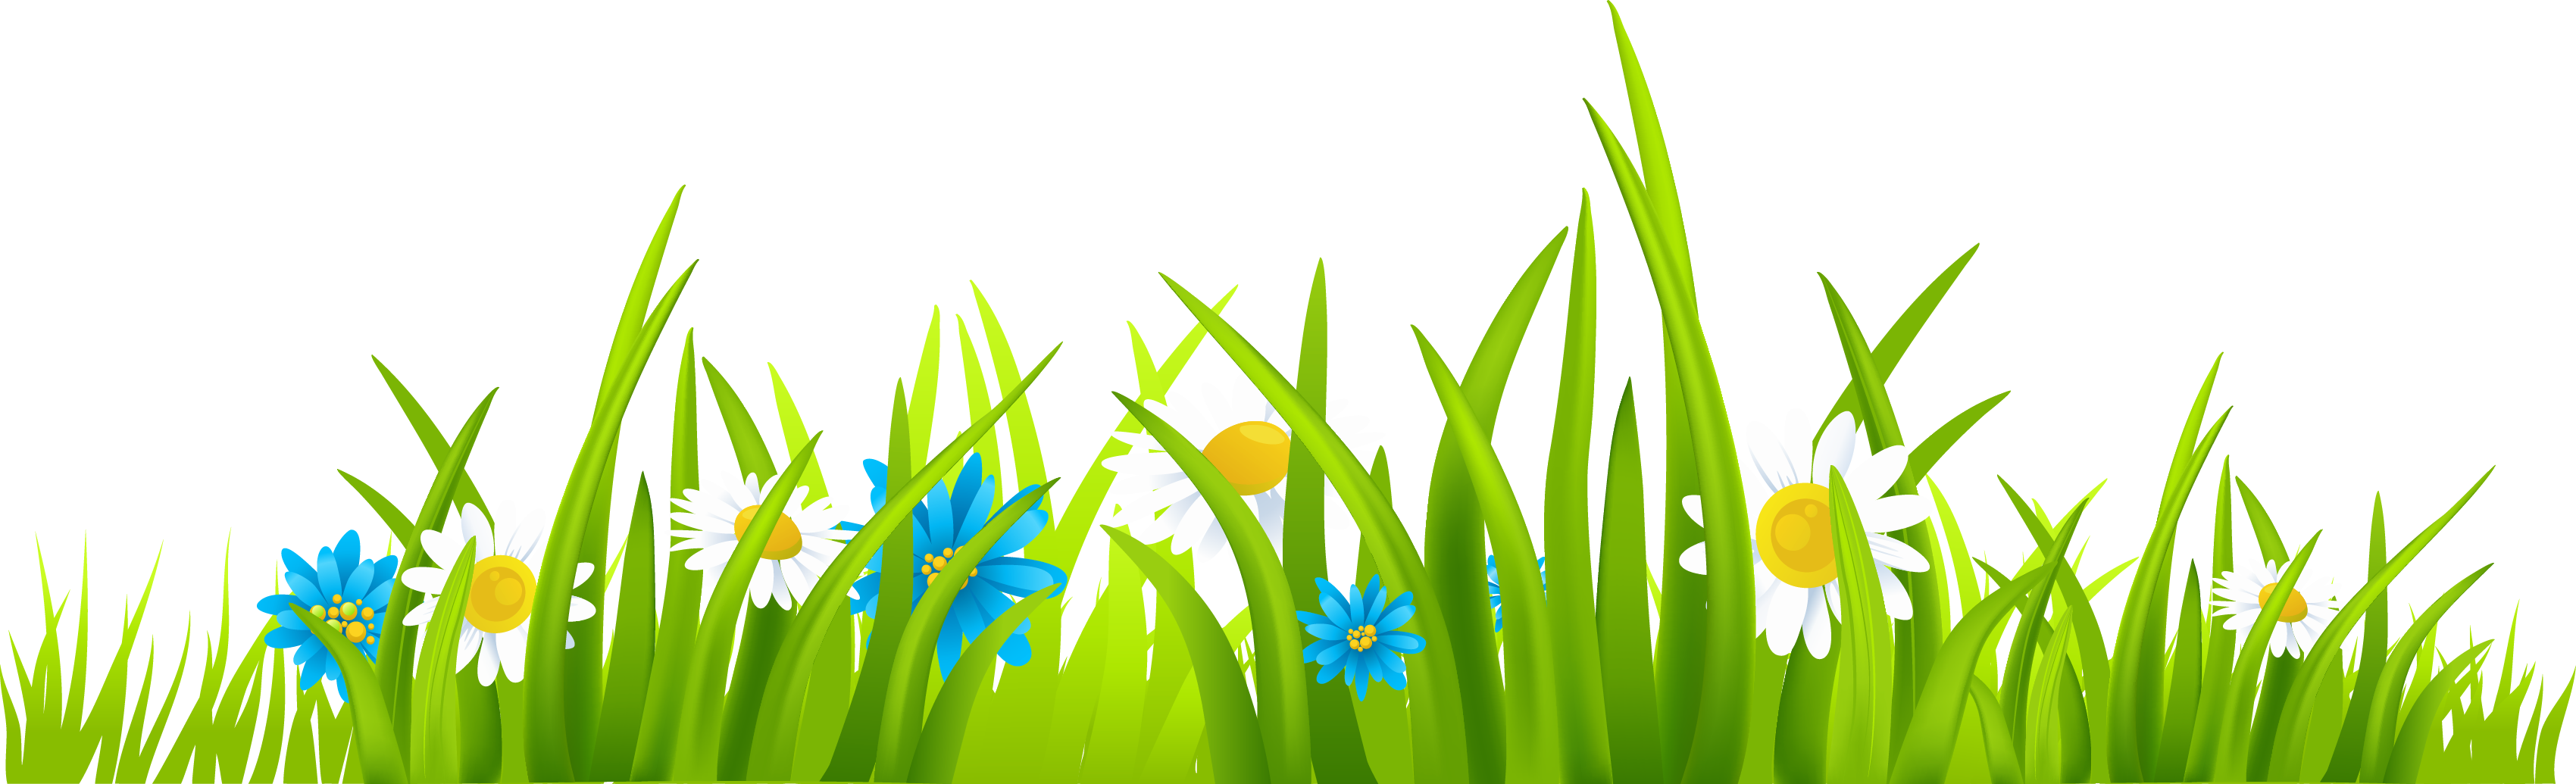 Ground with flowers picture. Grass clipart png format banner library download